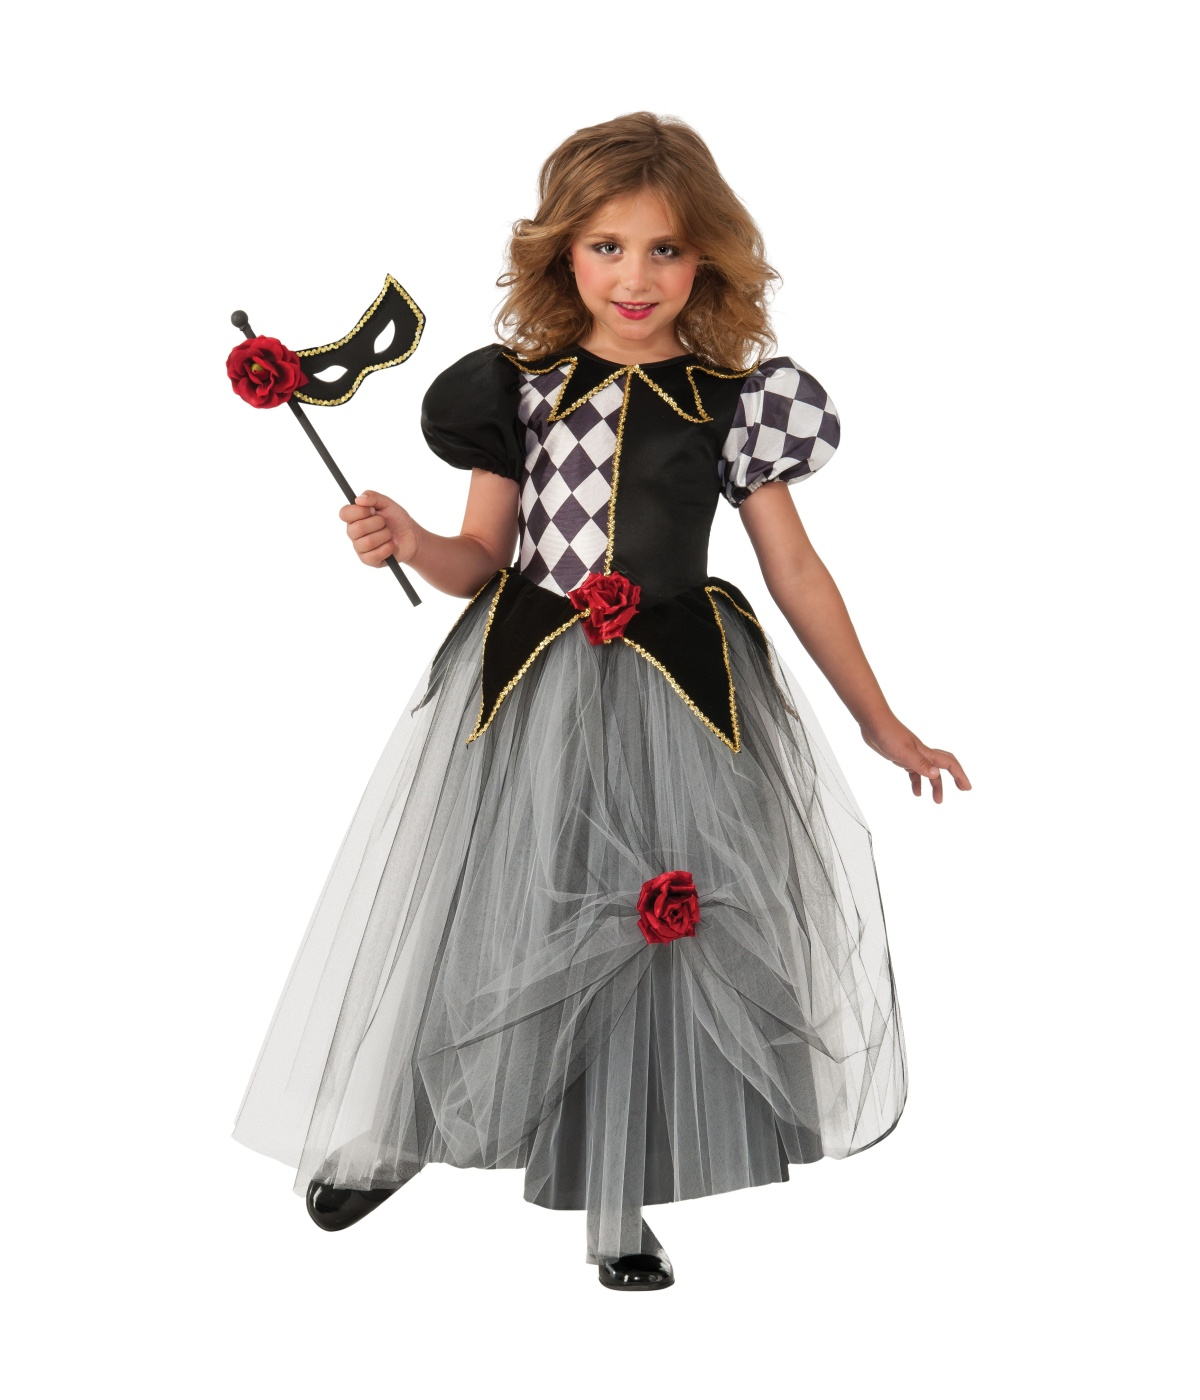 Popular masquerade costumes kids of Good Quality and at Affordable Prices You can Buy on AliExpress. We believe in helping you find the product that is right for you.